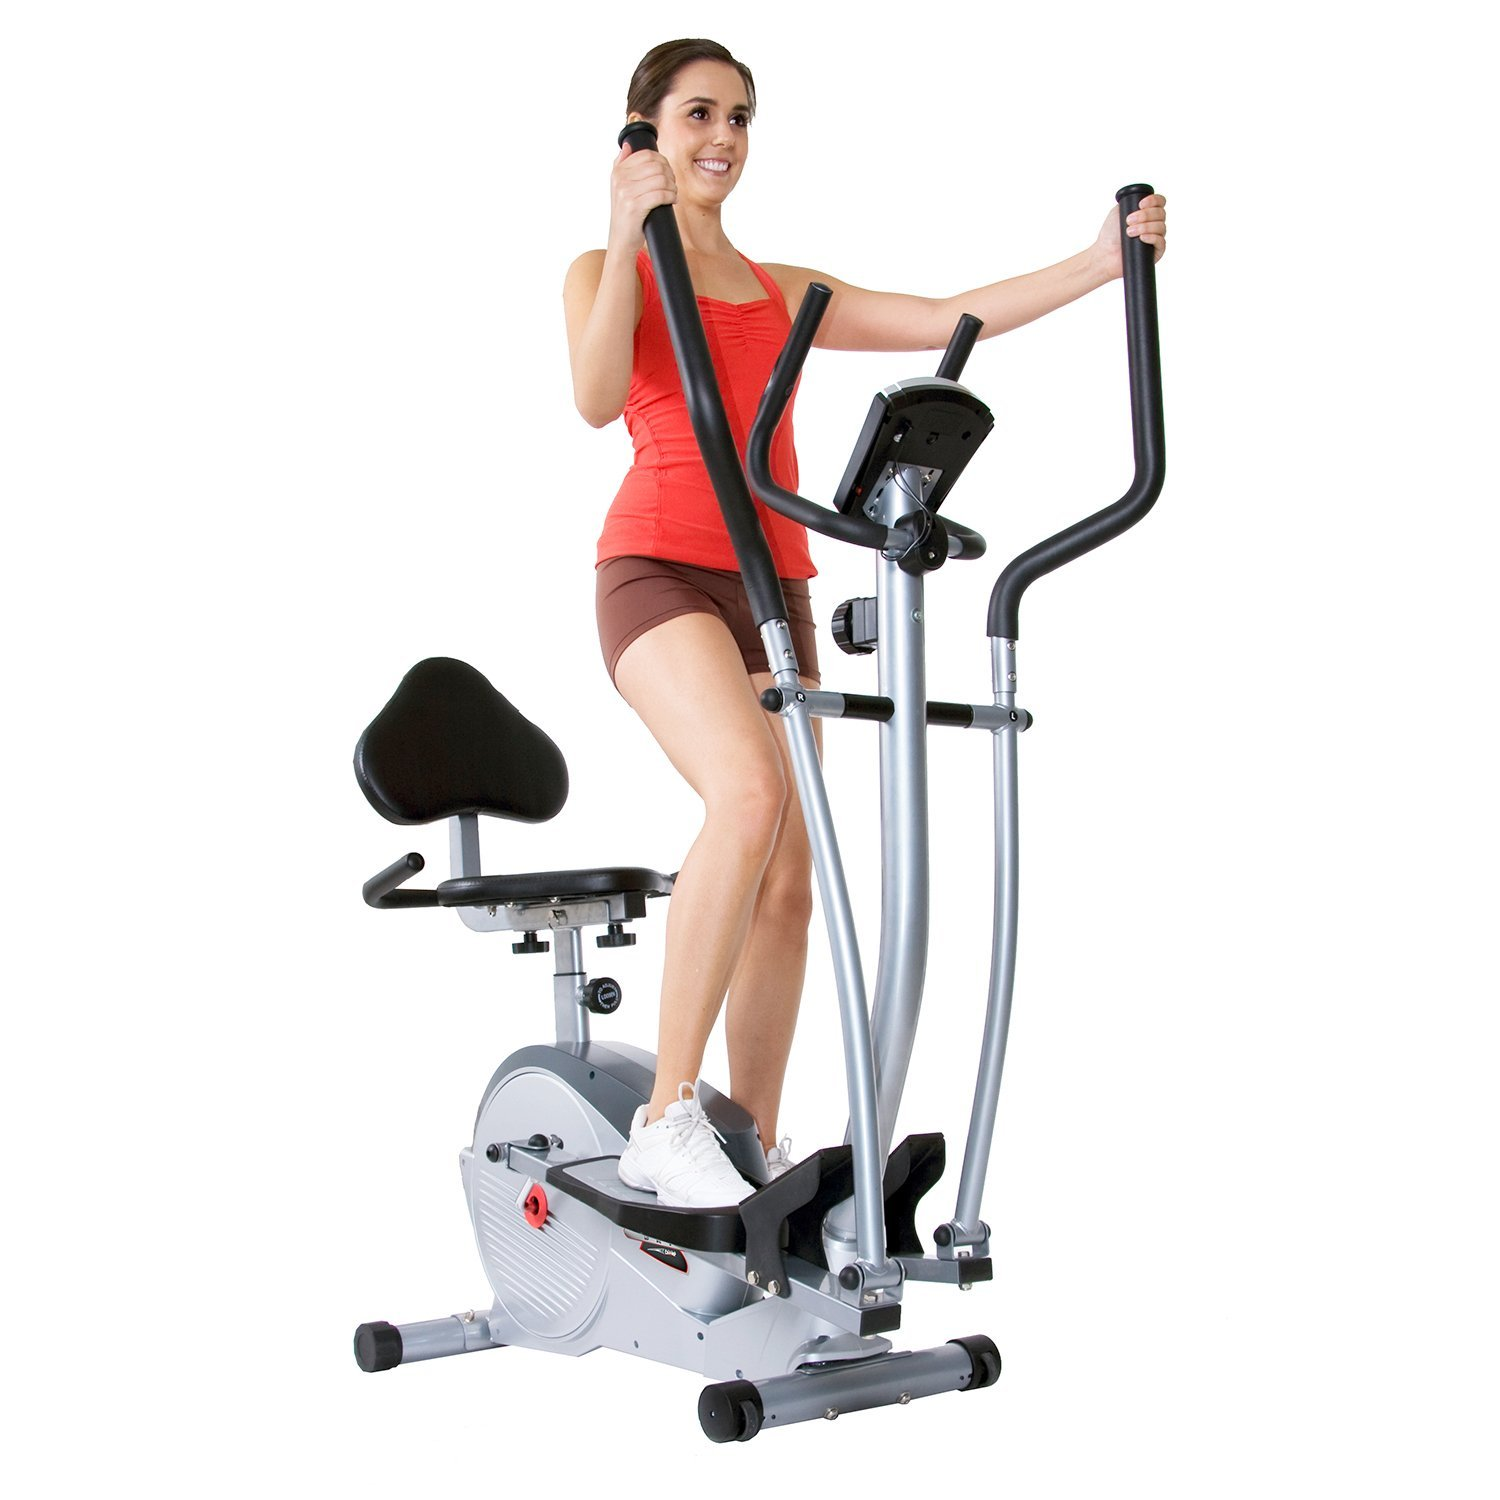 Body Champ 3-in-1 Trio Trainer Review - How Does It Rate?